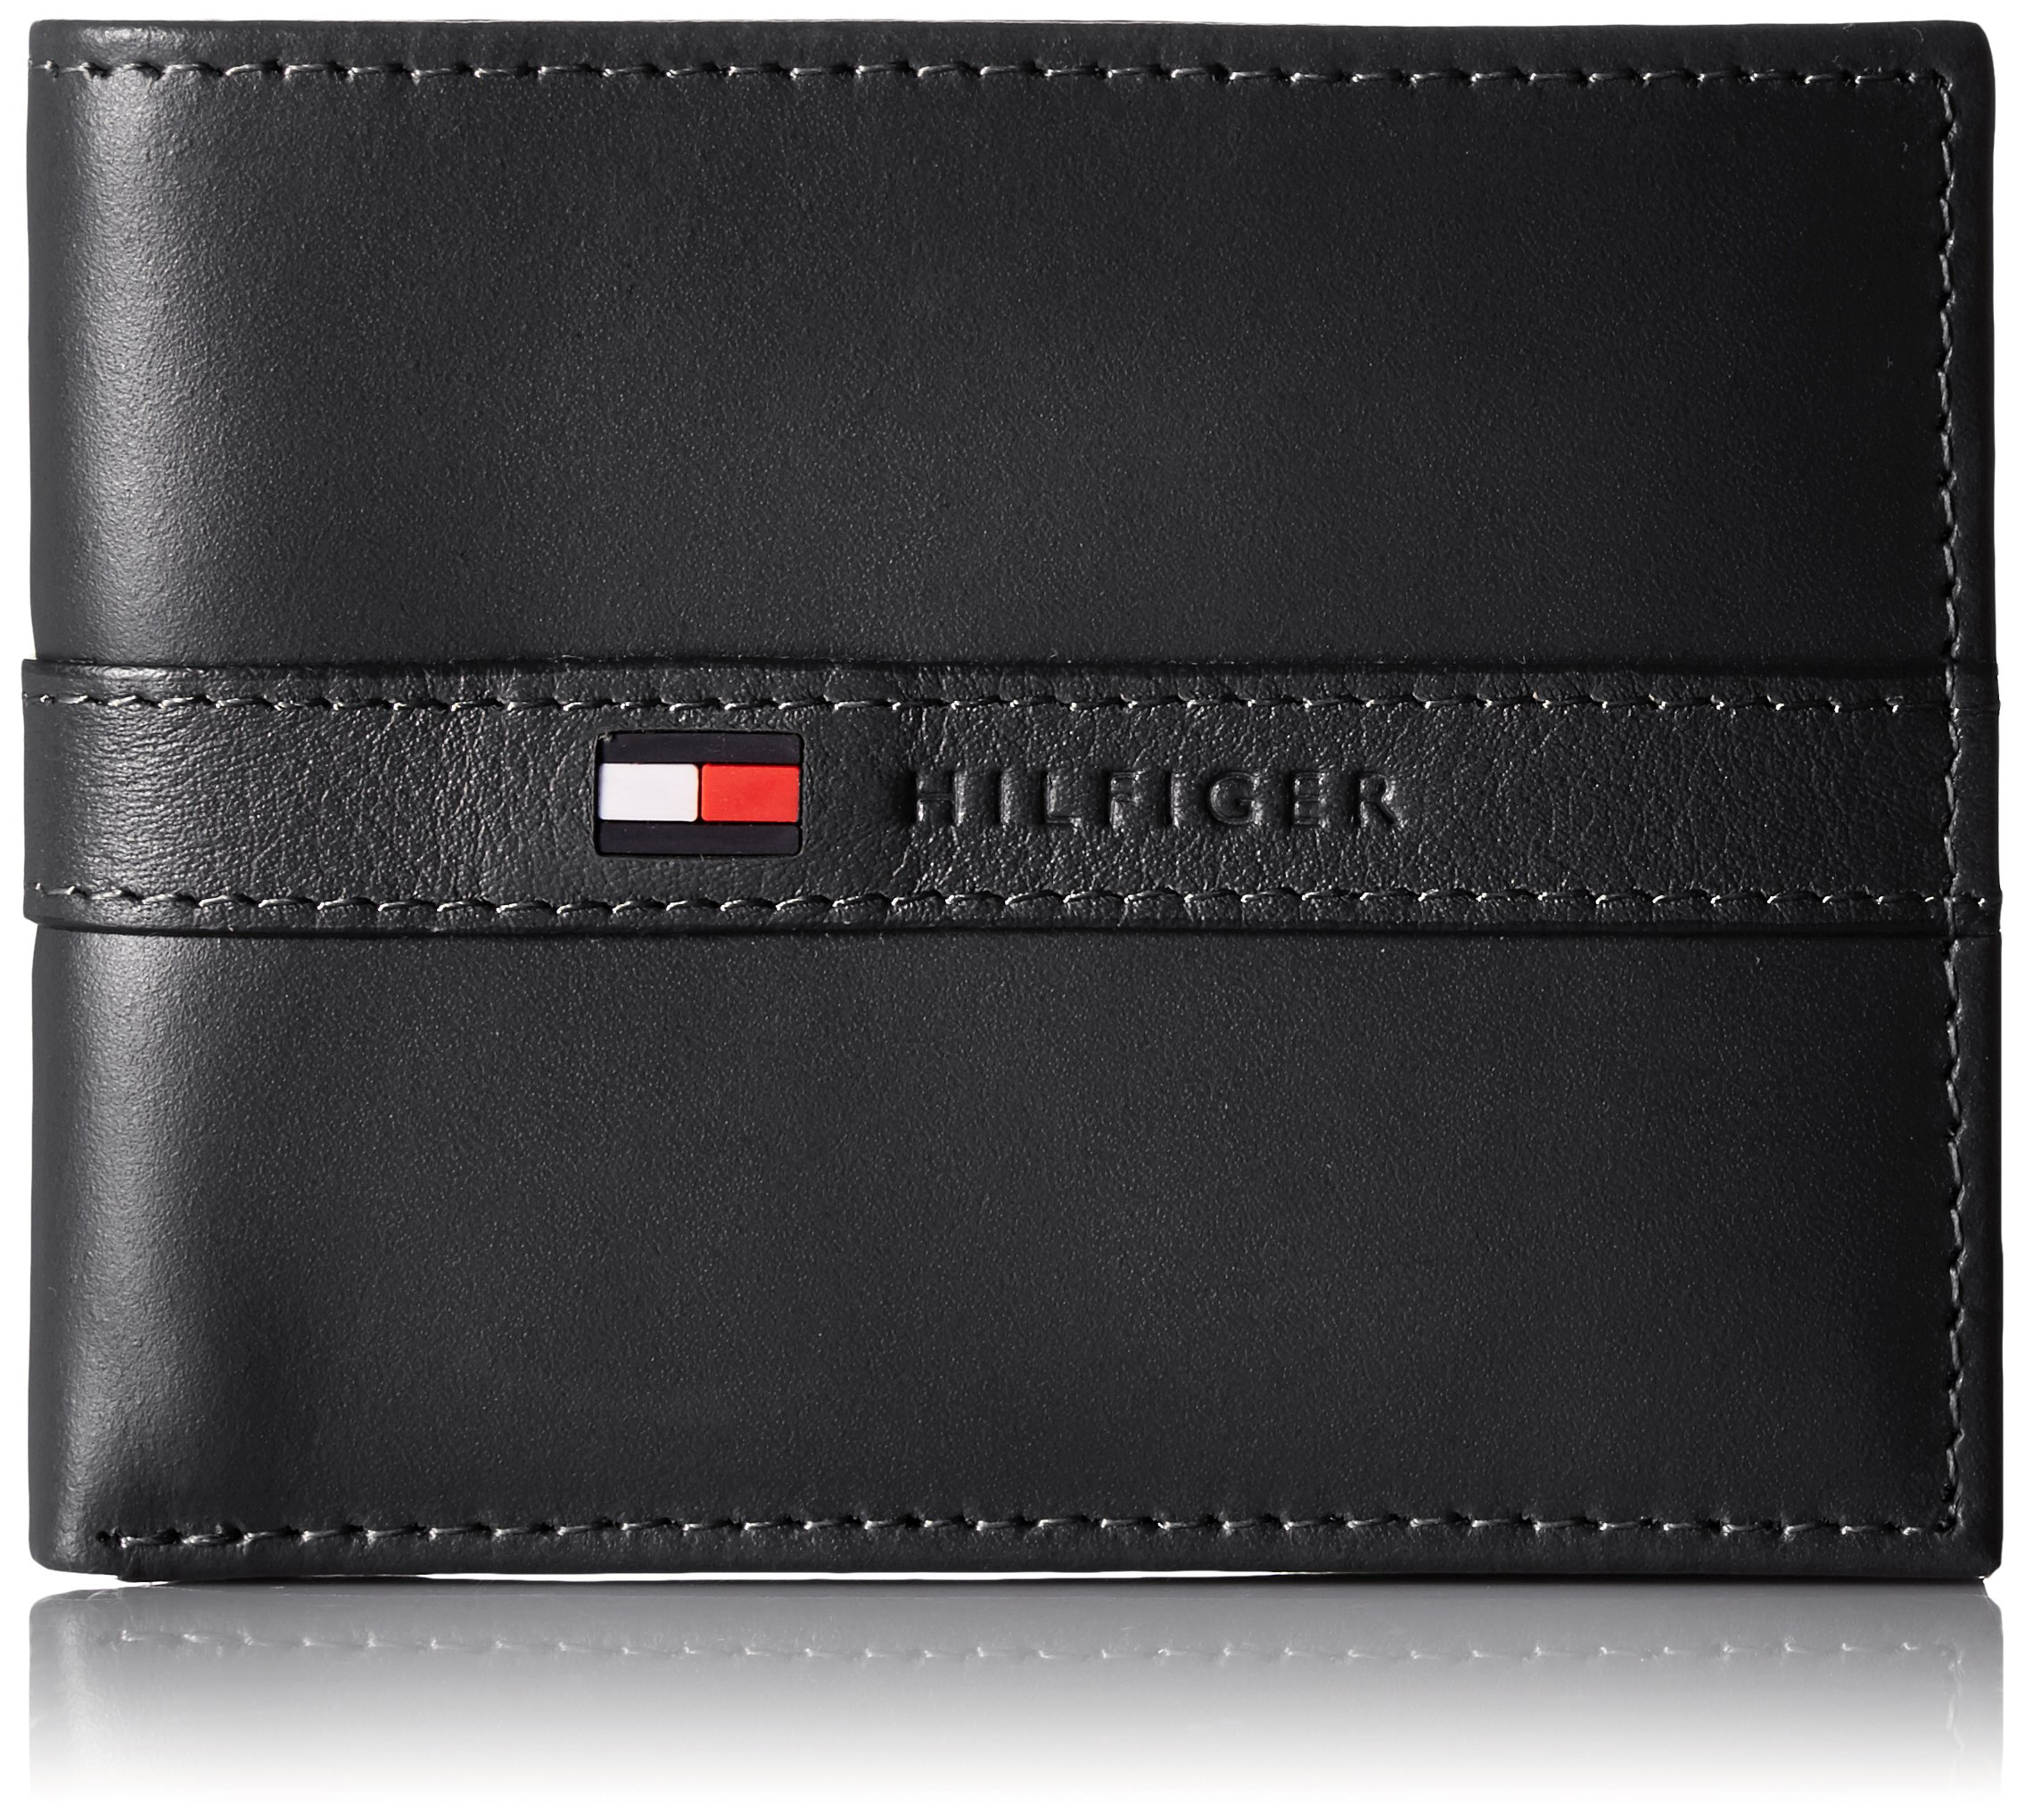 Tommy Hilfiger Men's Leather Wallet - Thin Sleek Casual Bifold with 6 Credit Card Pockets and Removable ID Window, Black